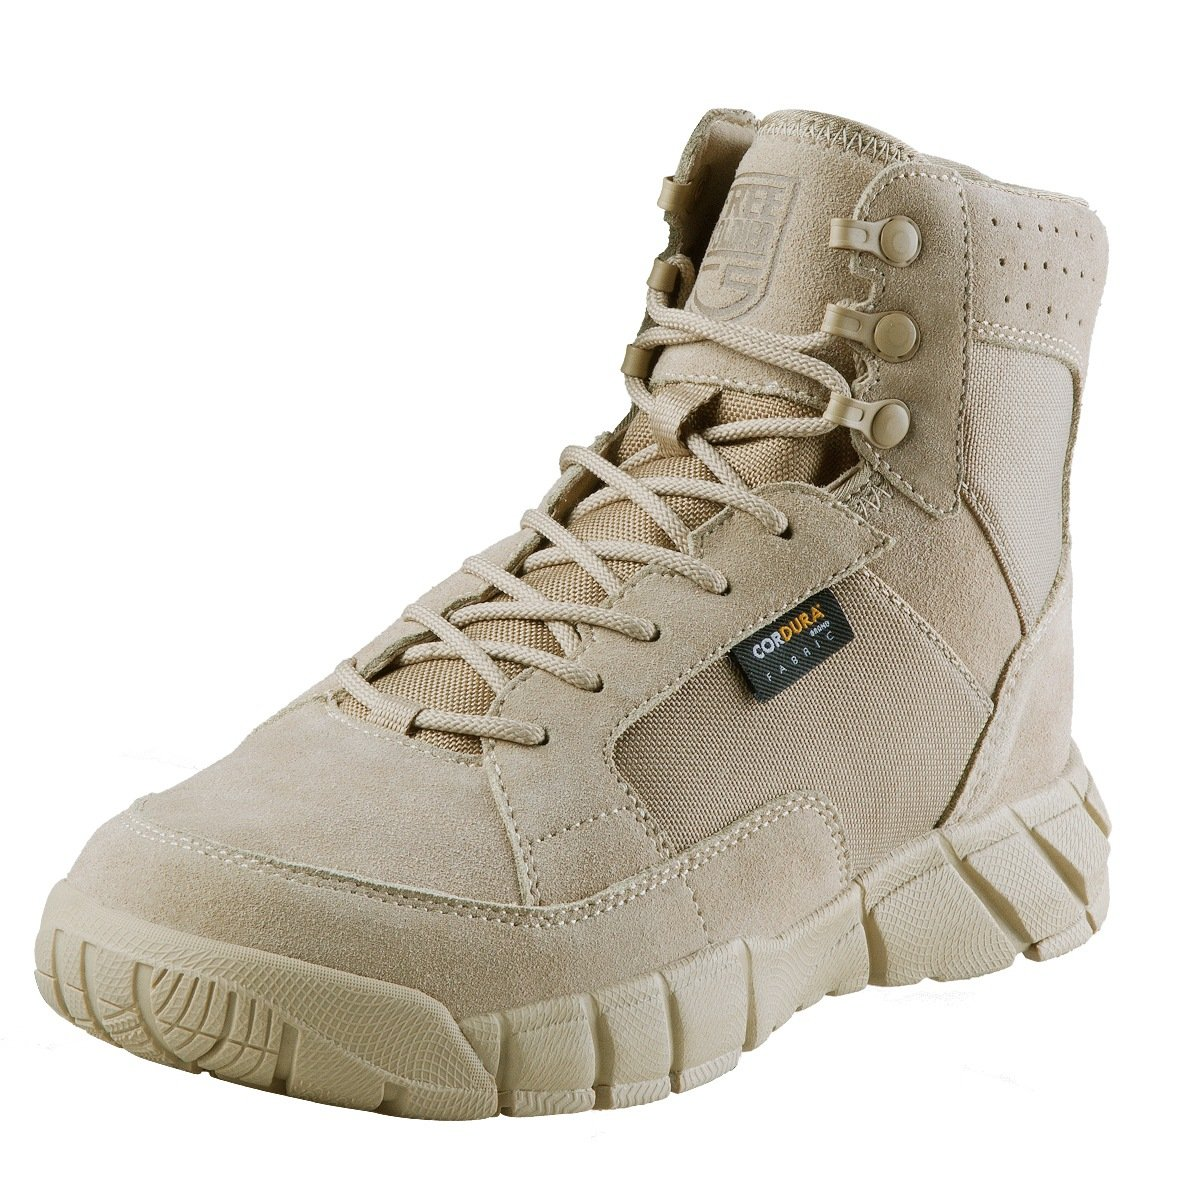 FREE SOLDIER Men's 6 inch Lightweight Boots Tactical Military Urban Composite Toe Desert Tan Boot(Sand 10.5 D(M) US)